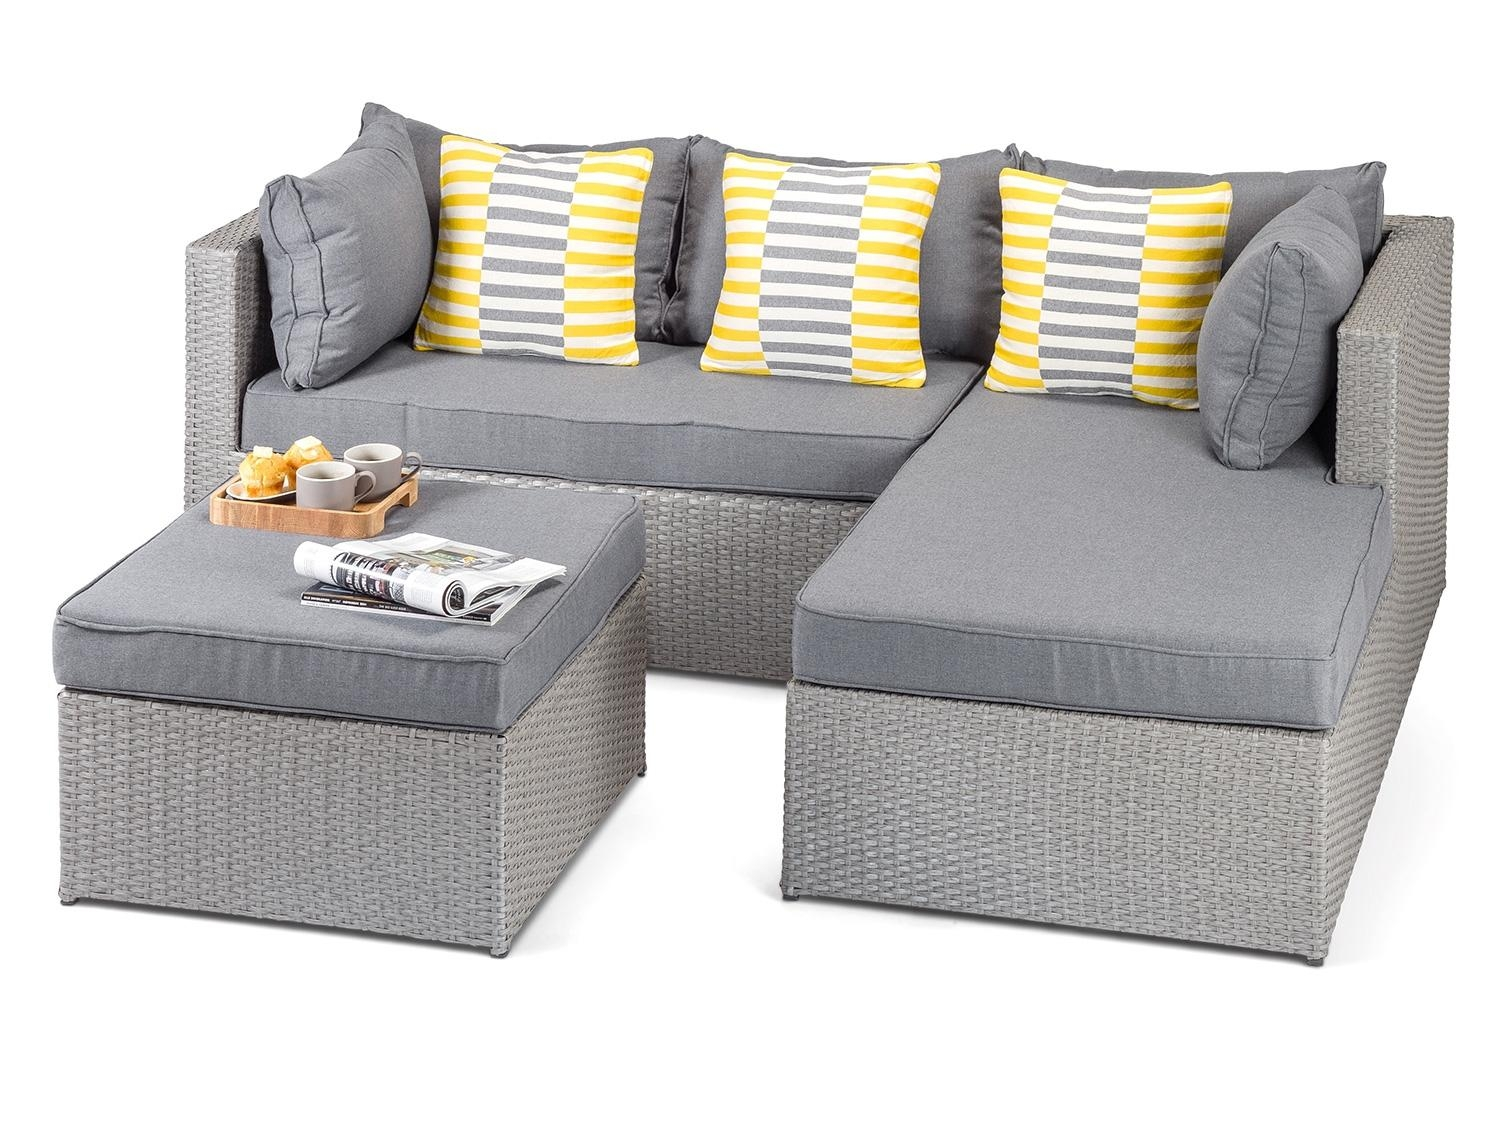 Outdoor Rattan Sofa 23 Ideas Of Modern Rattan Sofas Sofa Ideas